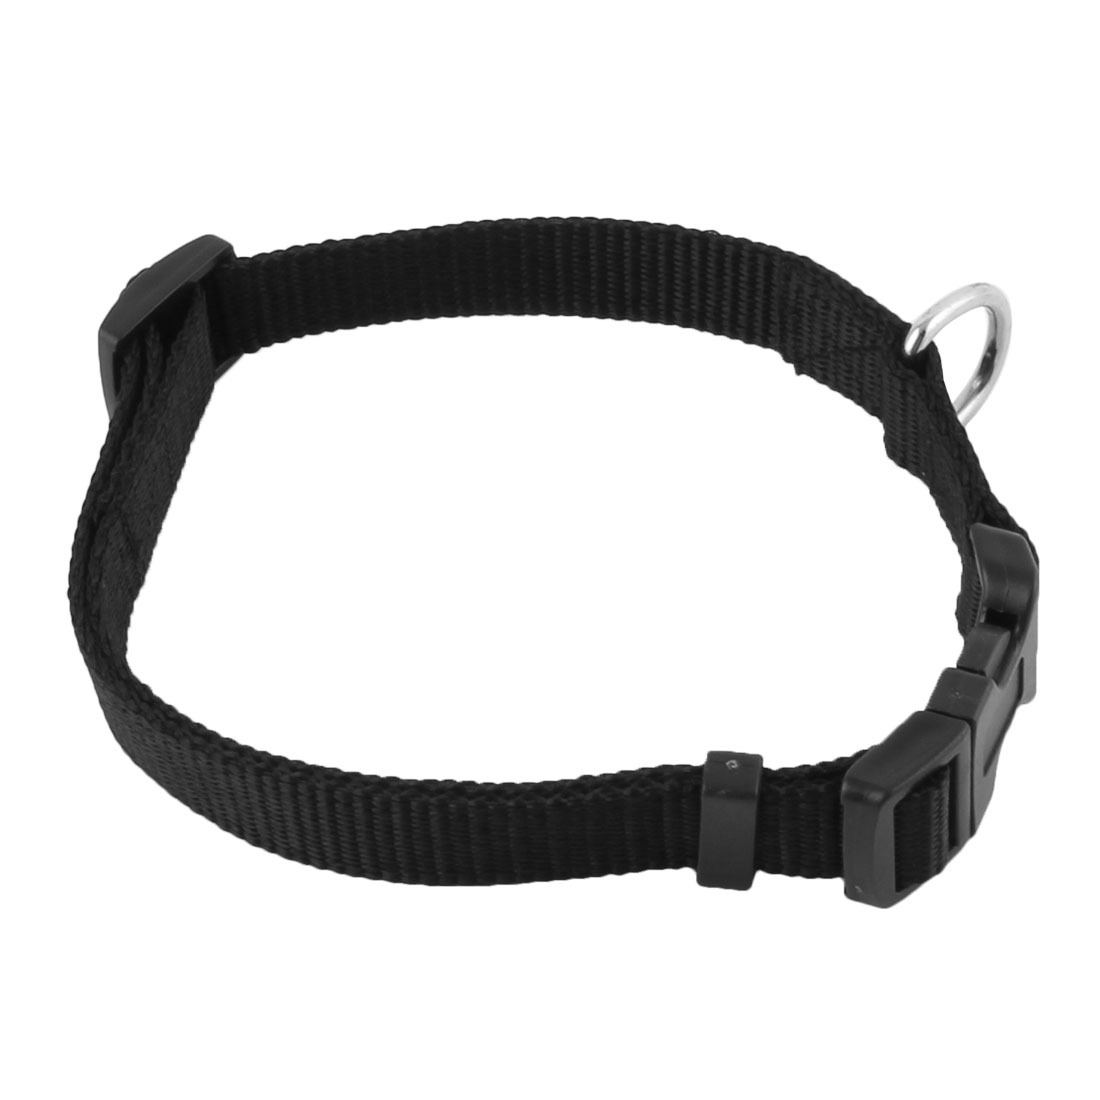 Dog Puppy Nylon Adjustable Safty Buckle Neck Collar Strap Band Black